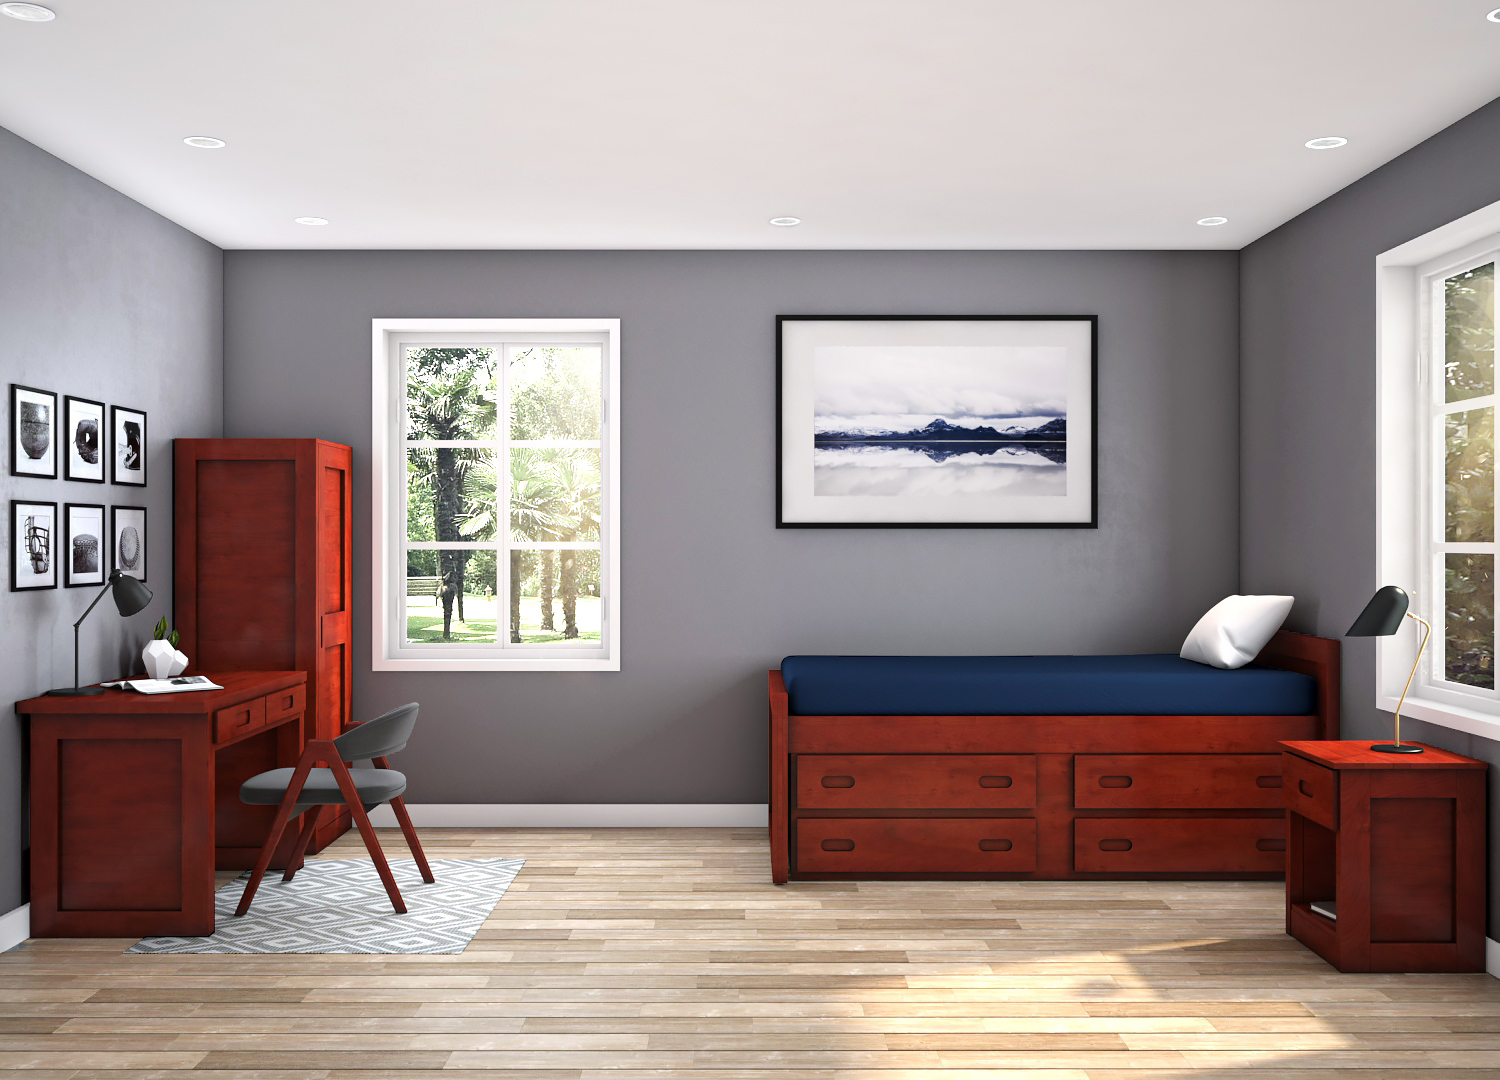 Tough Stuff Bedrooms help create a healing space.